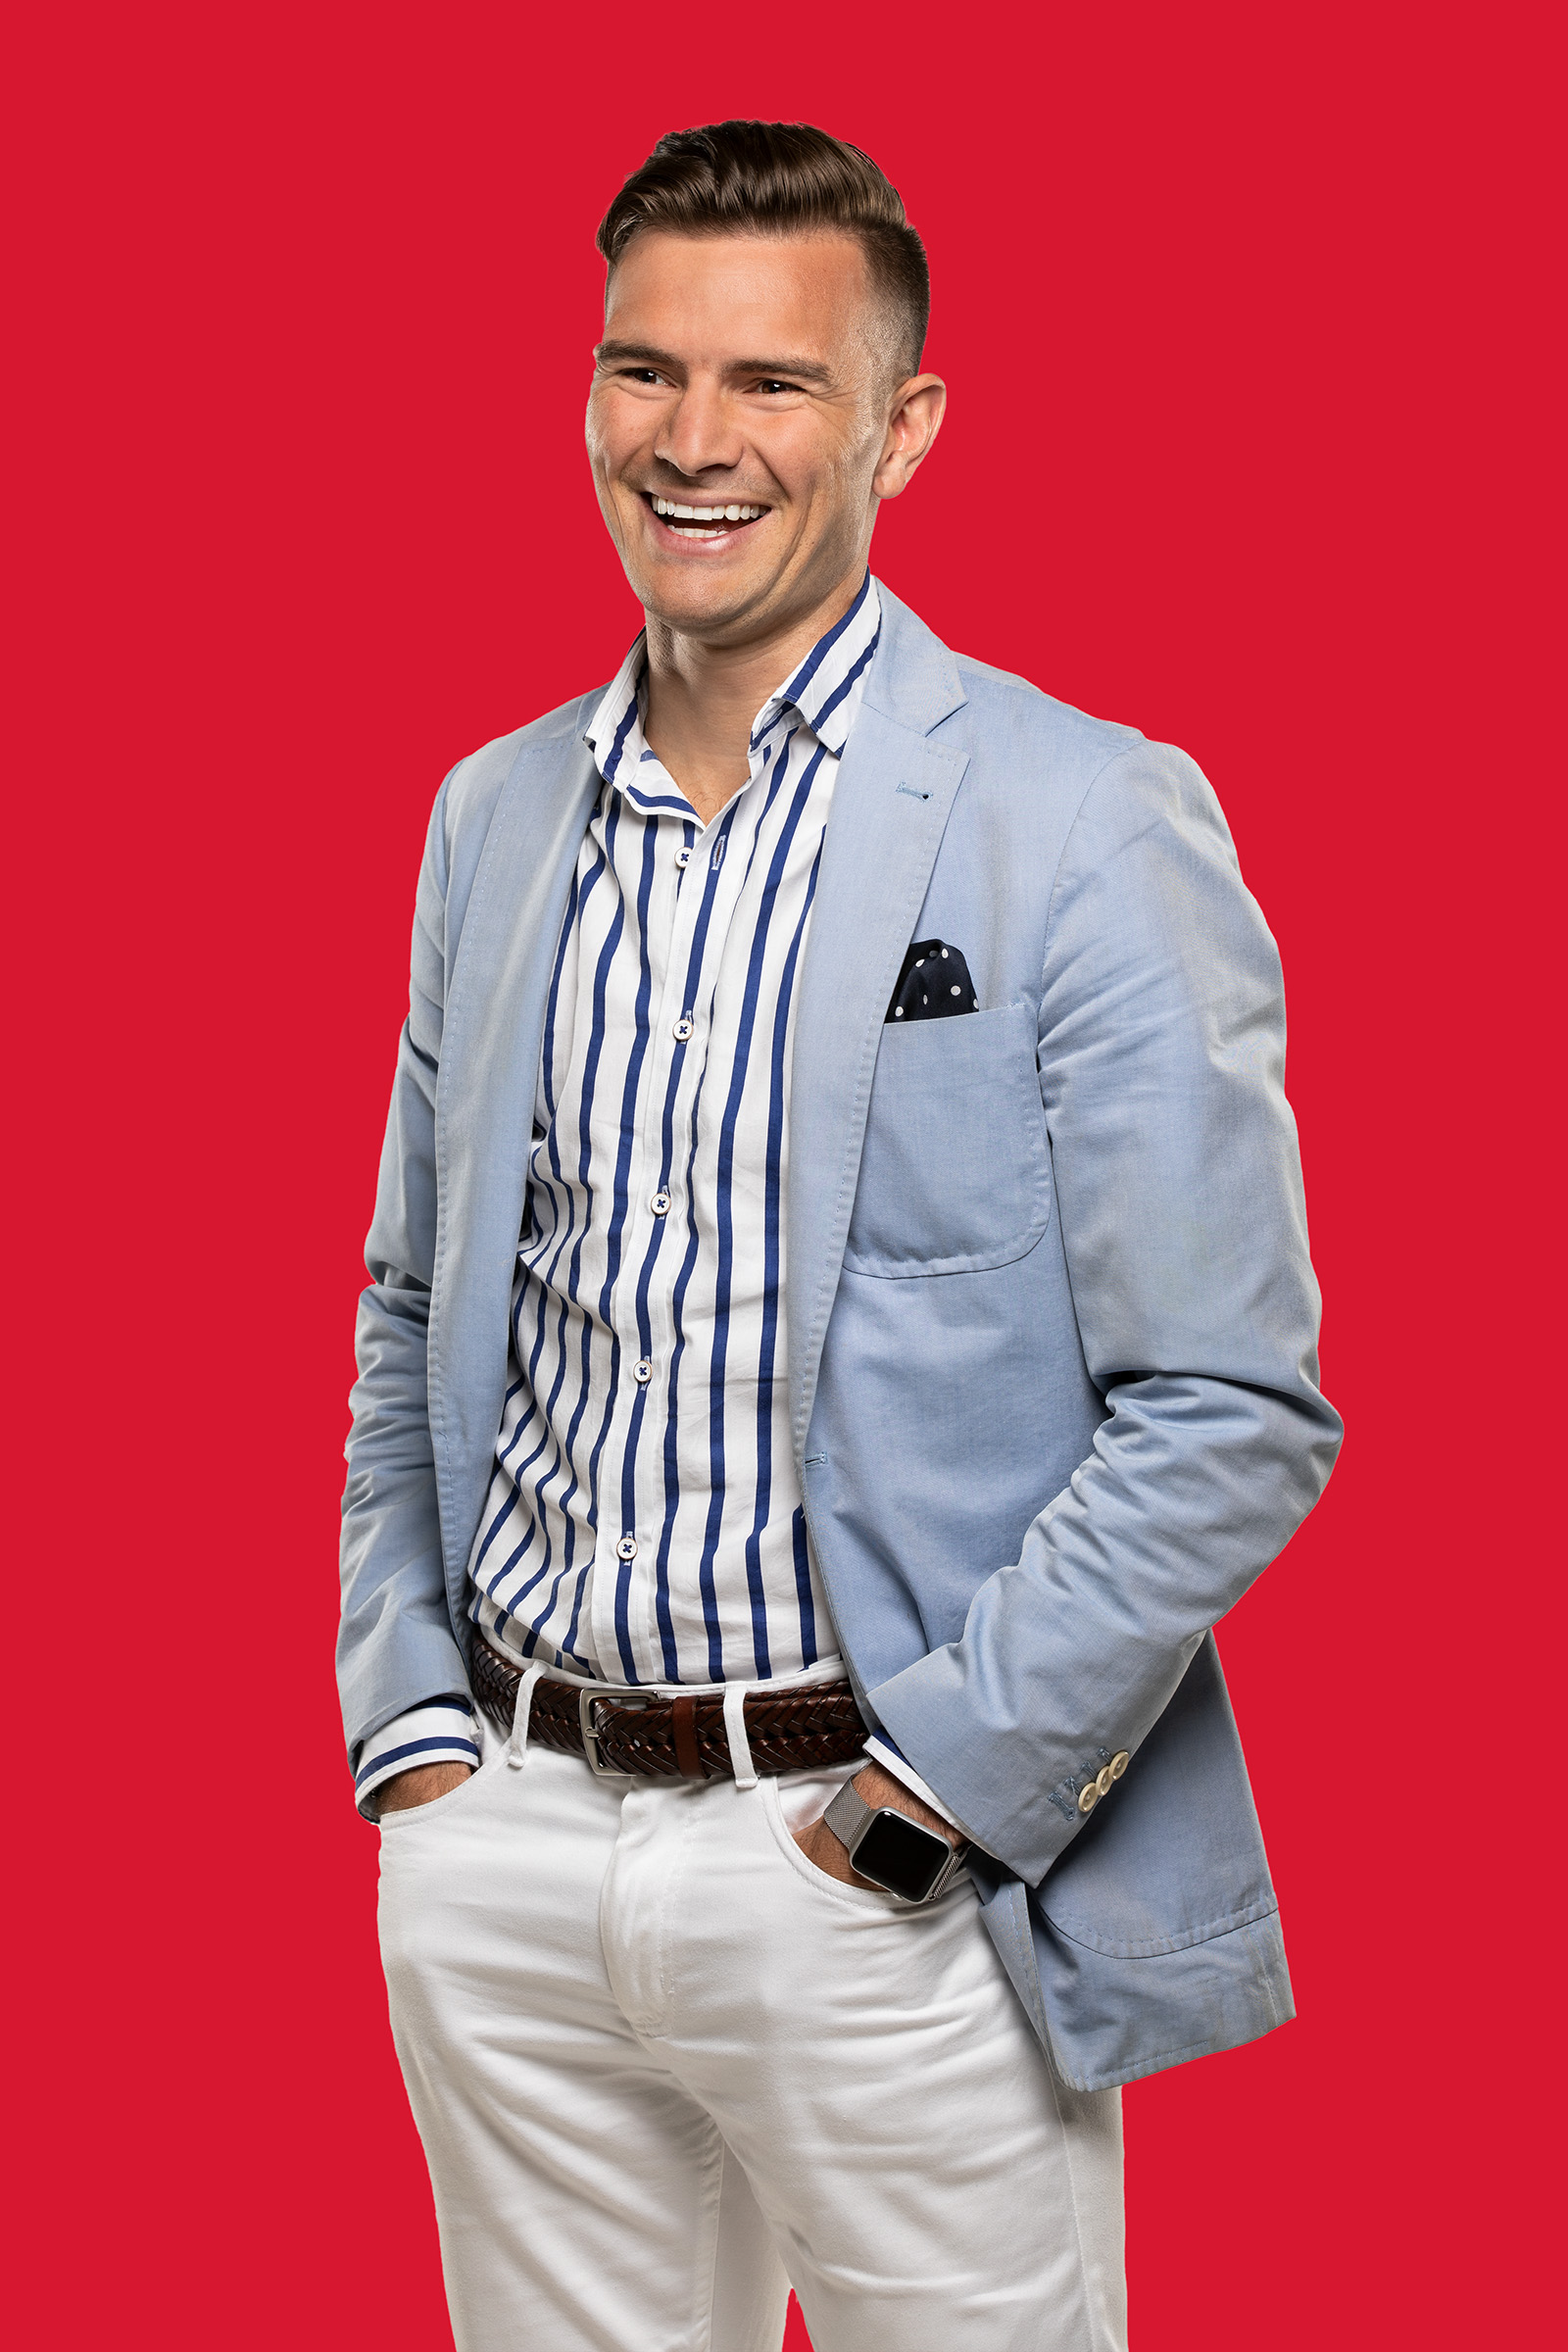 man standing with hands in pockets on red background